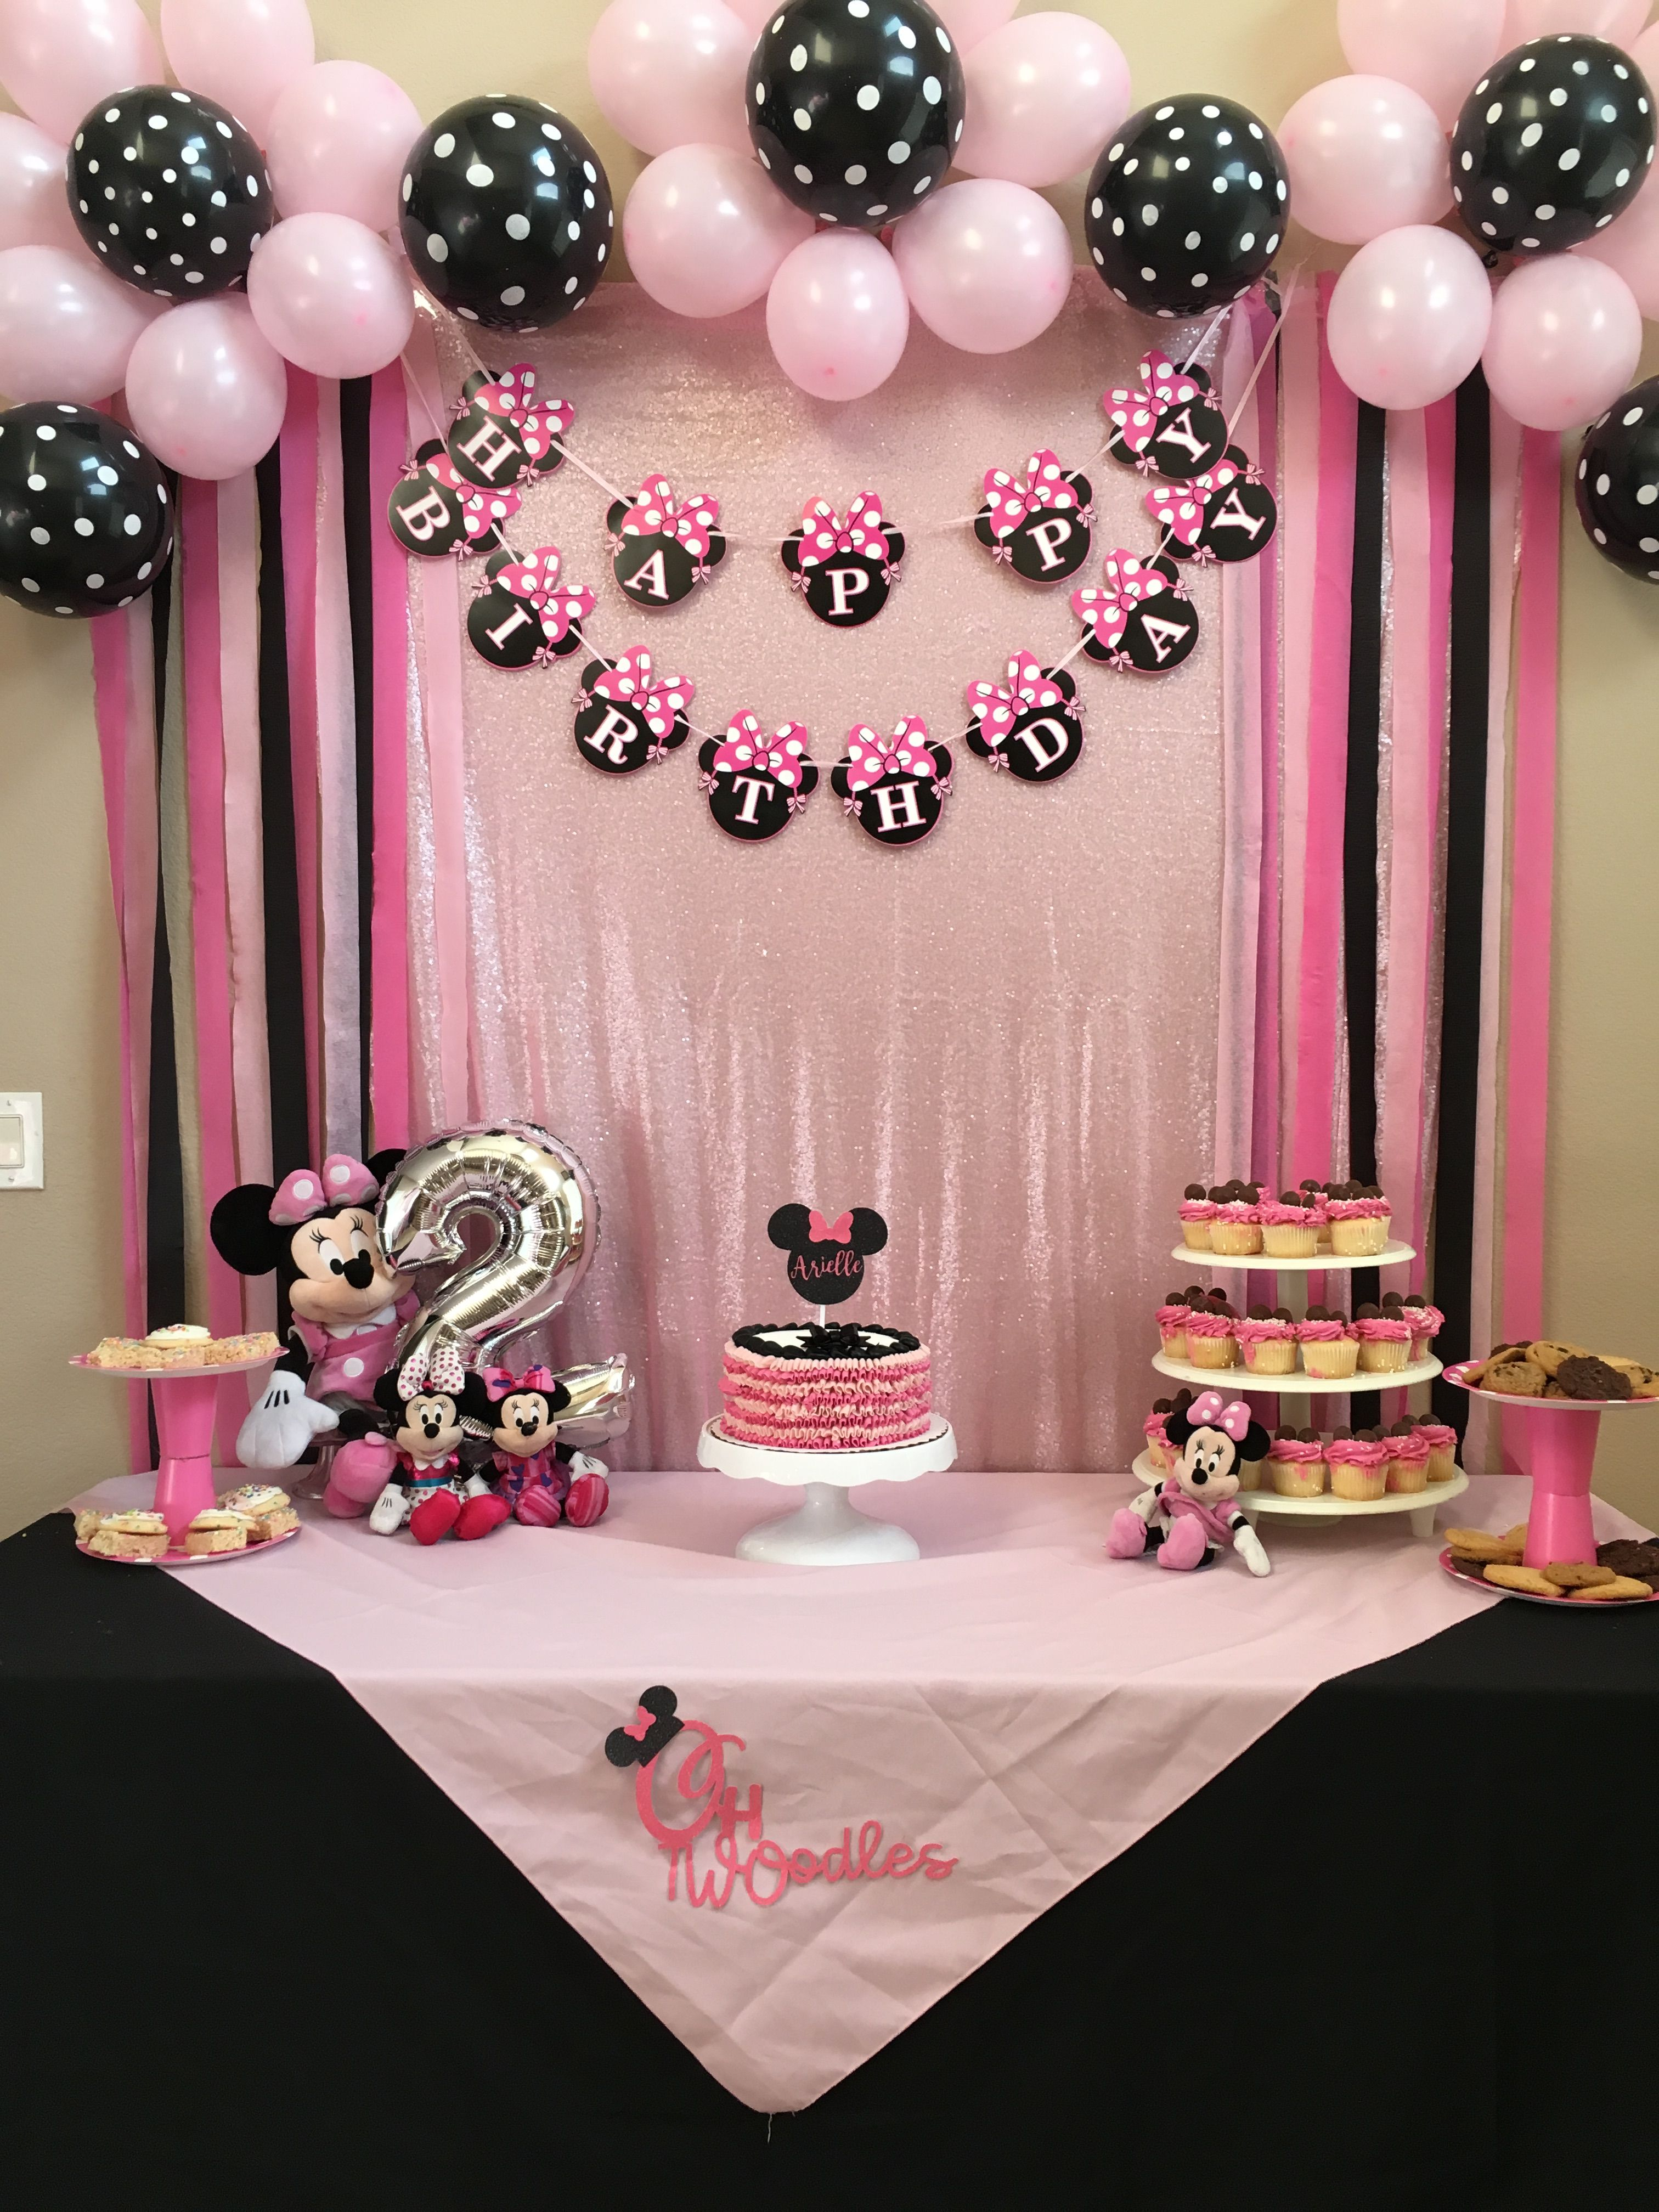 Mickey Mouse Minnie Mouse Birthday Party Ideas Photo 7 Of 21 Minnie Mouse Birthday Party Minnie Birthday Minnie Birthday Party